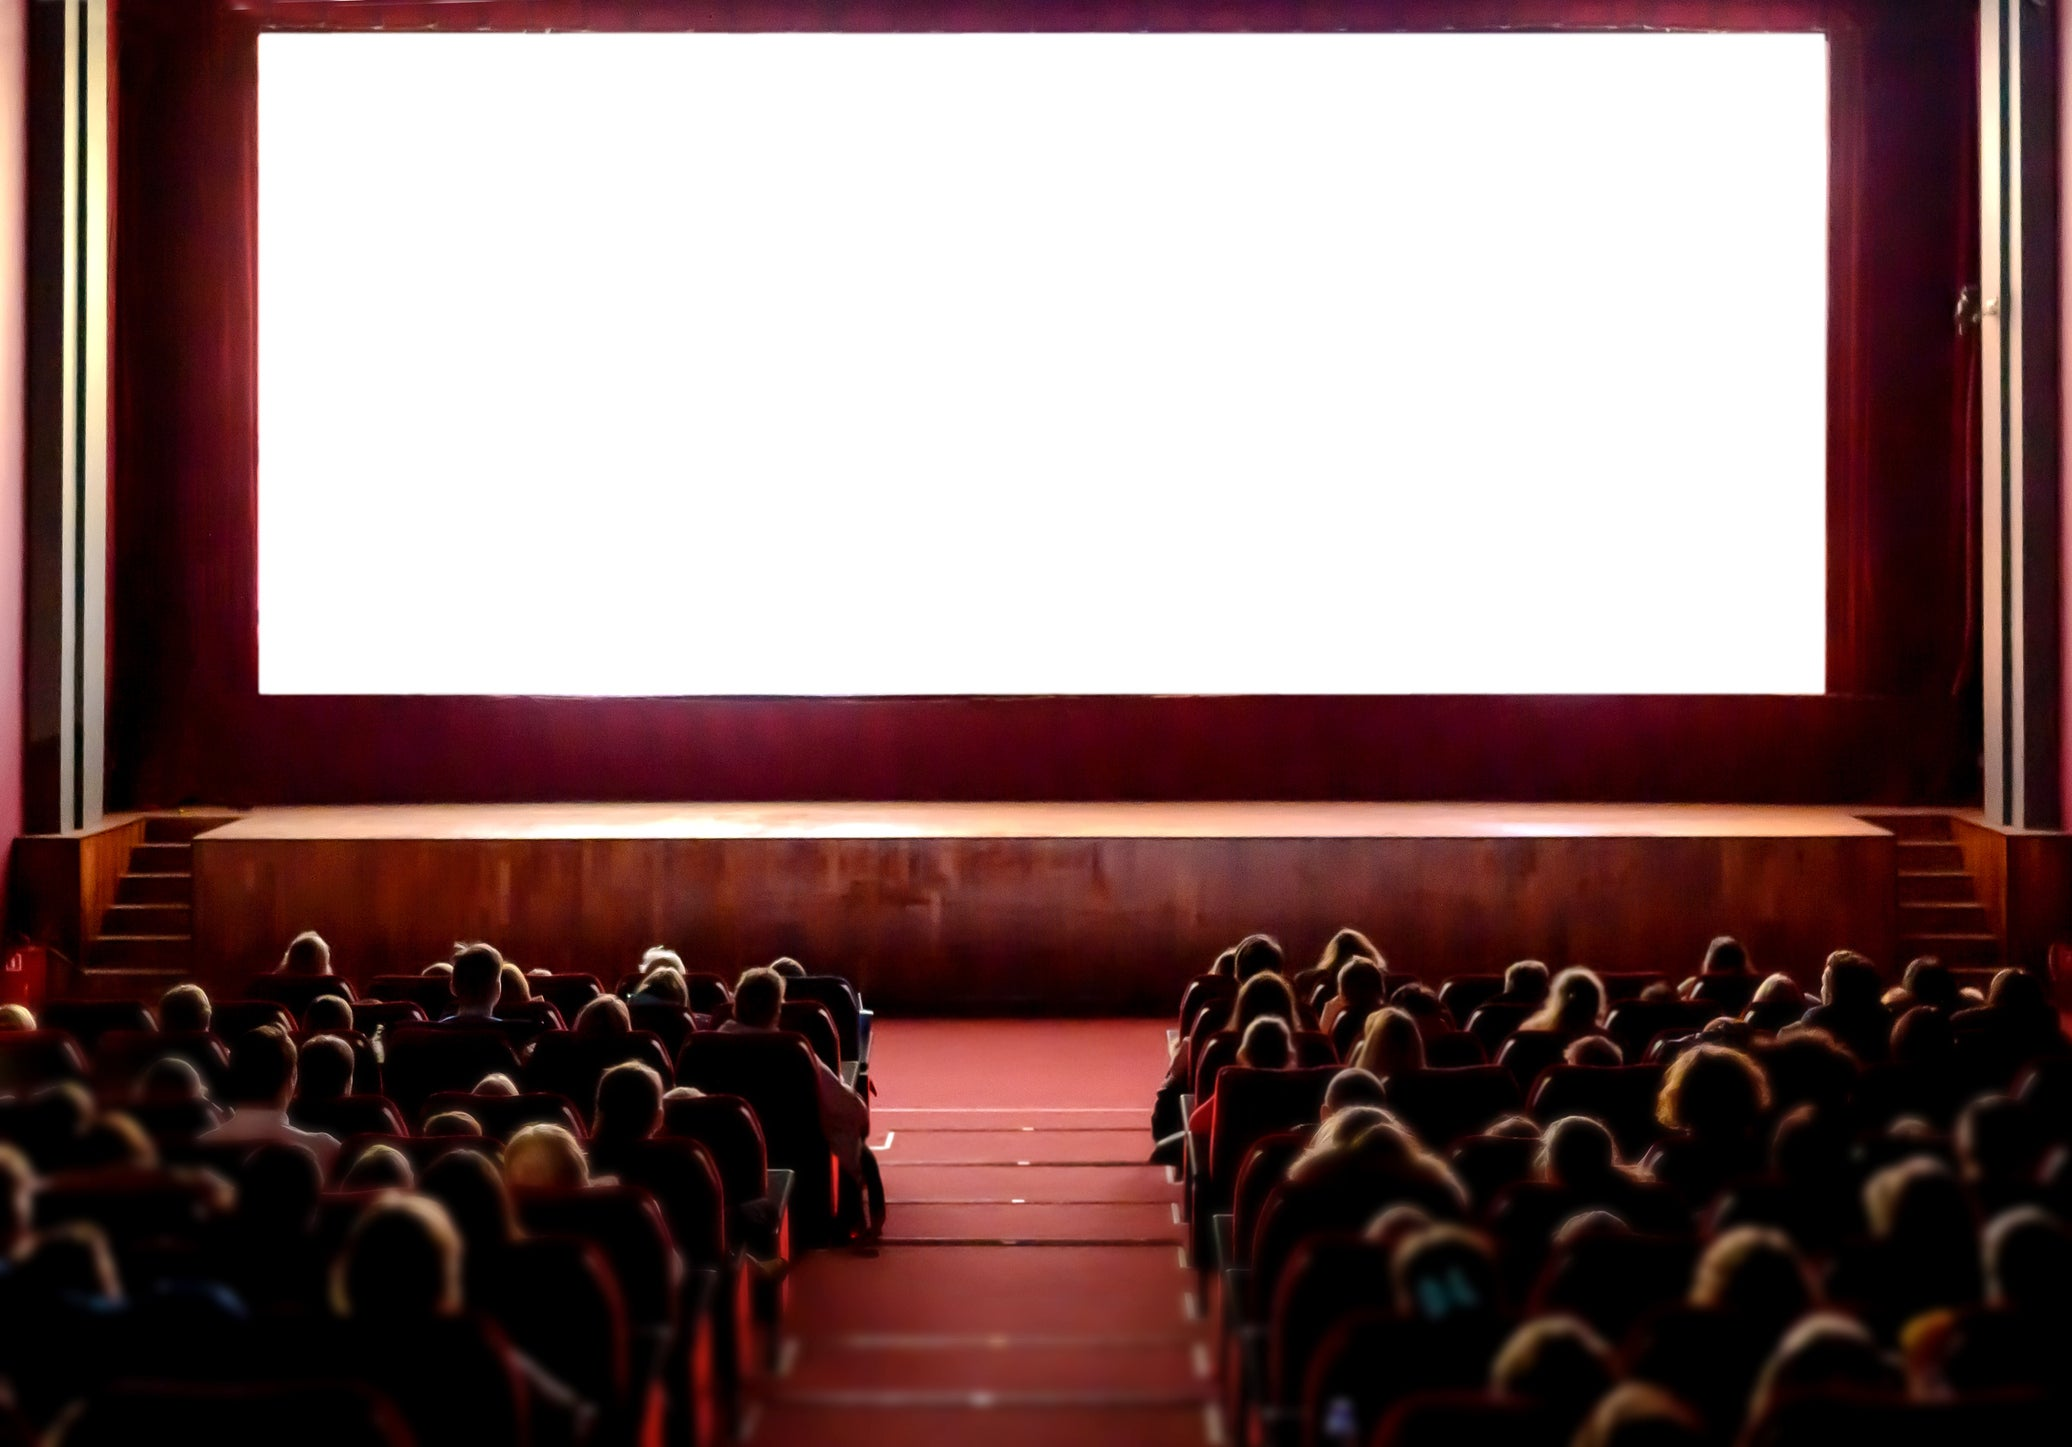 Why Movie Theater Stocks Soared Today The Motley Fool